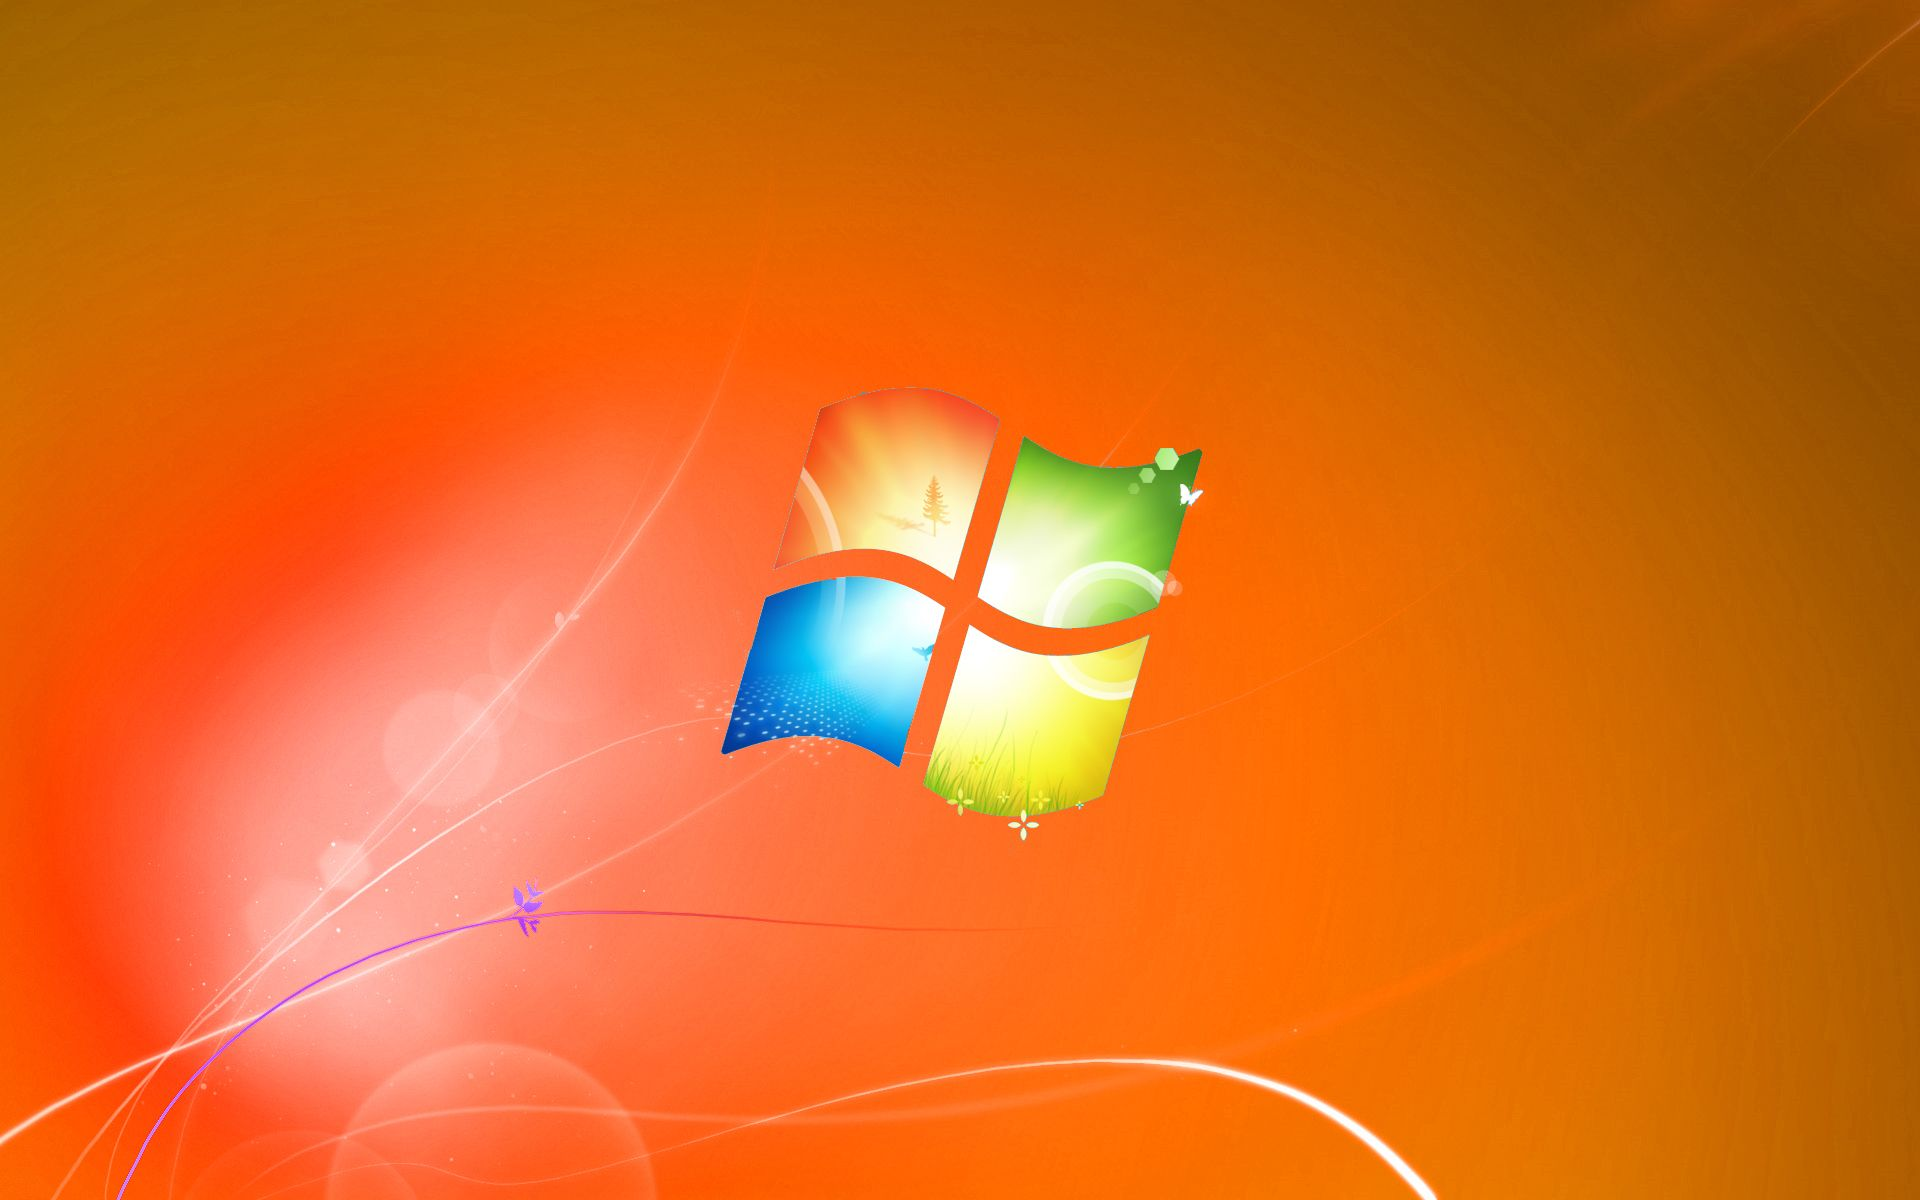 Windows 7 Default Wallpaper Orange Version by dominichulme